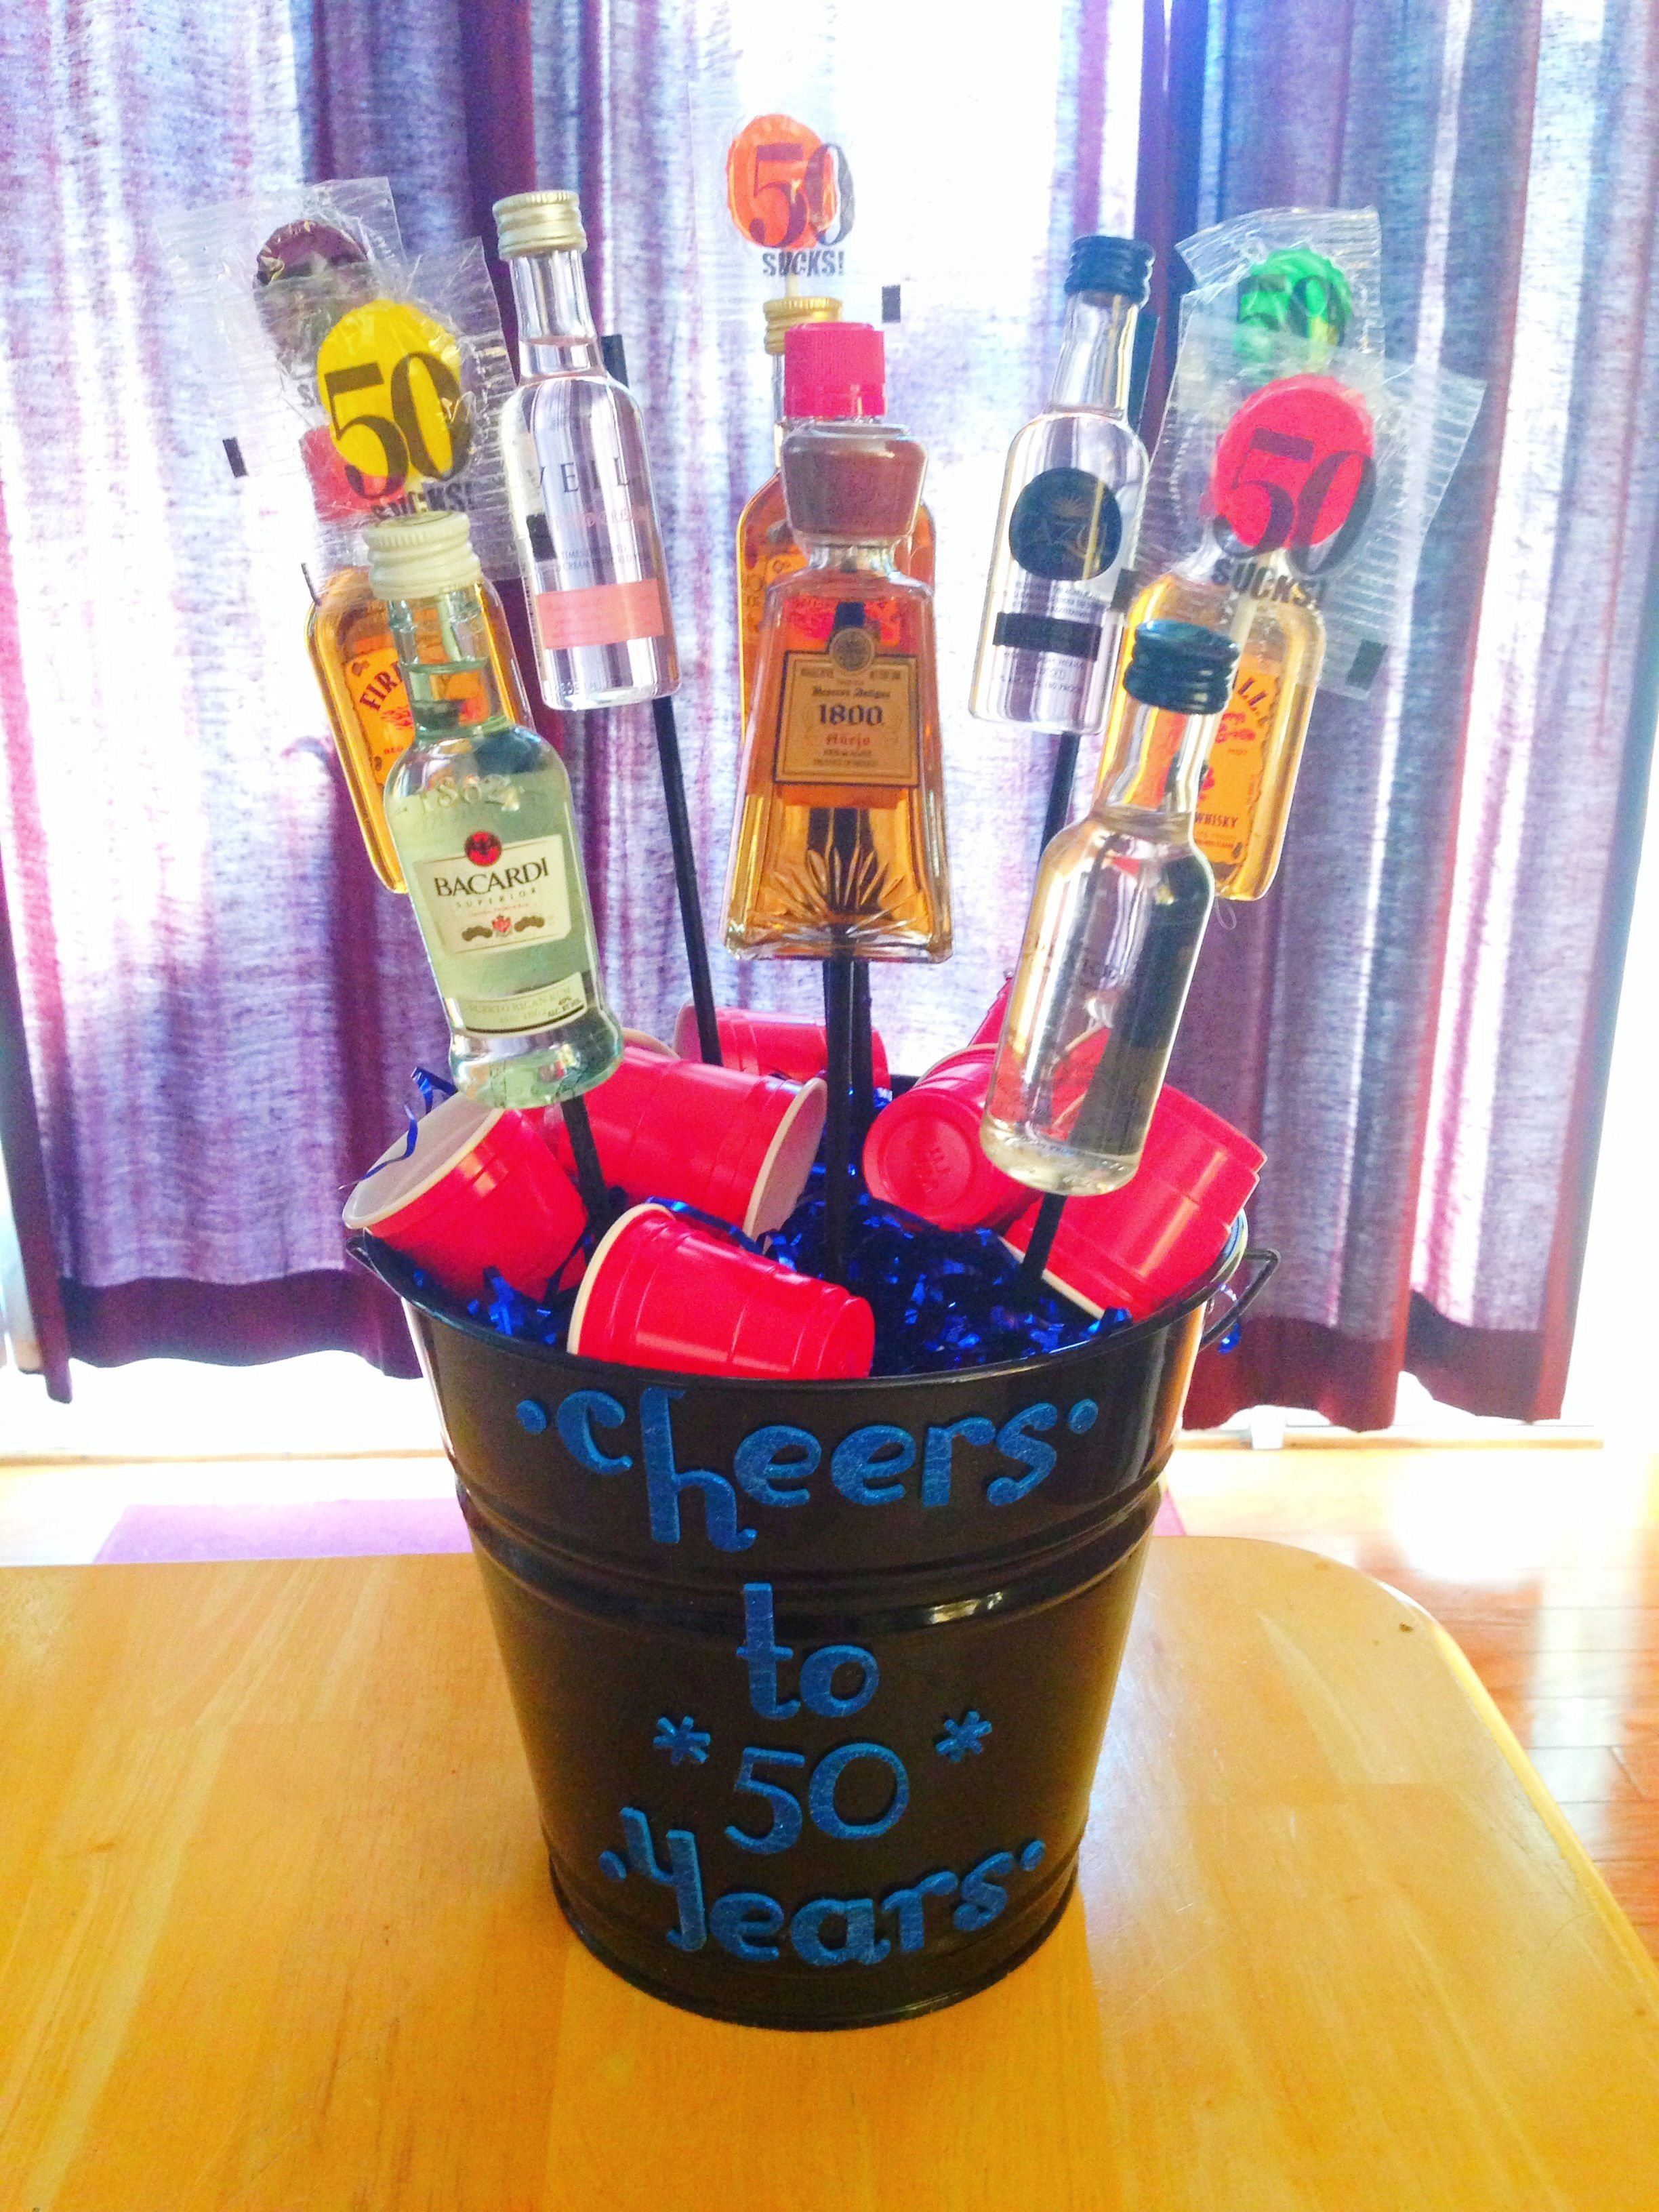 alcohol gift for over 21 year olds. | pinterest inspired | pinterest